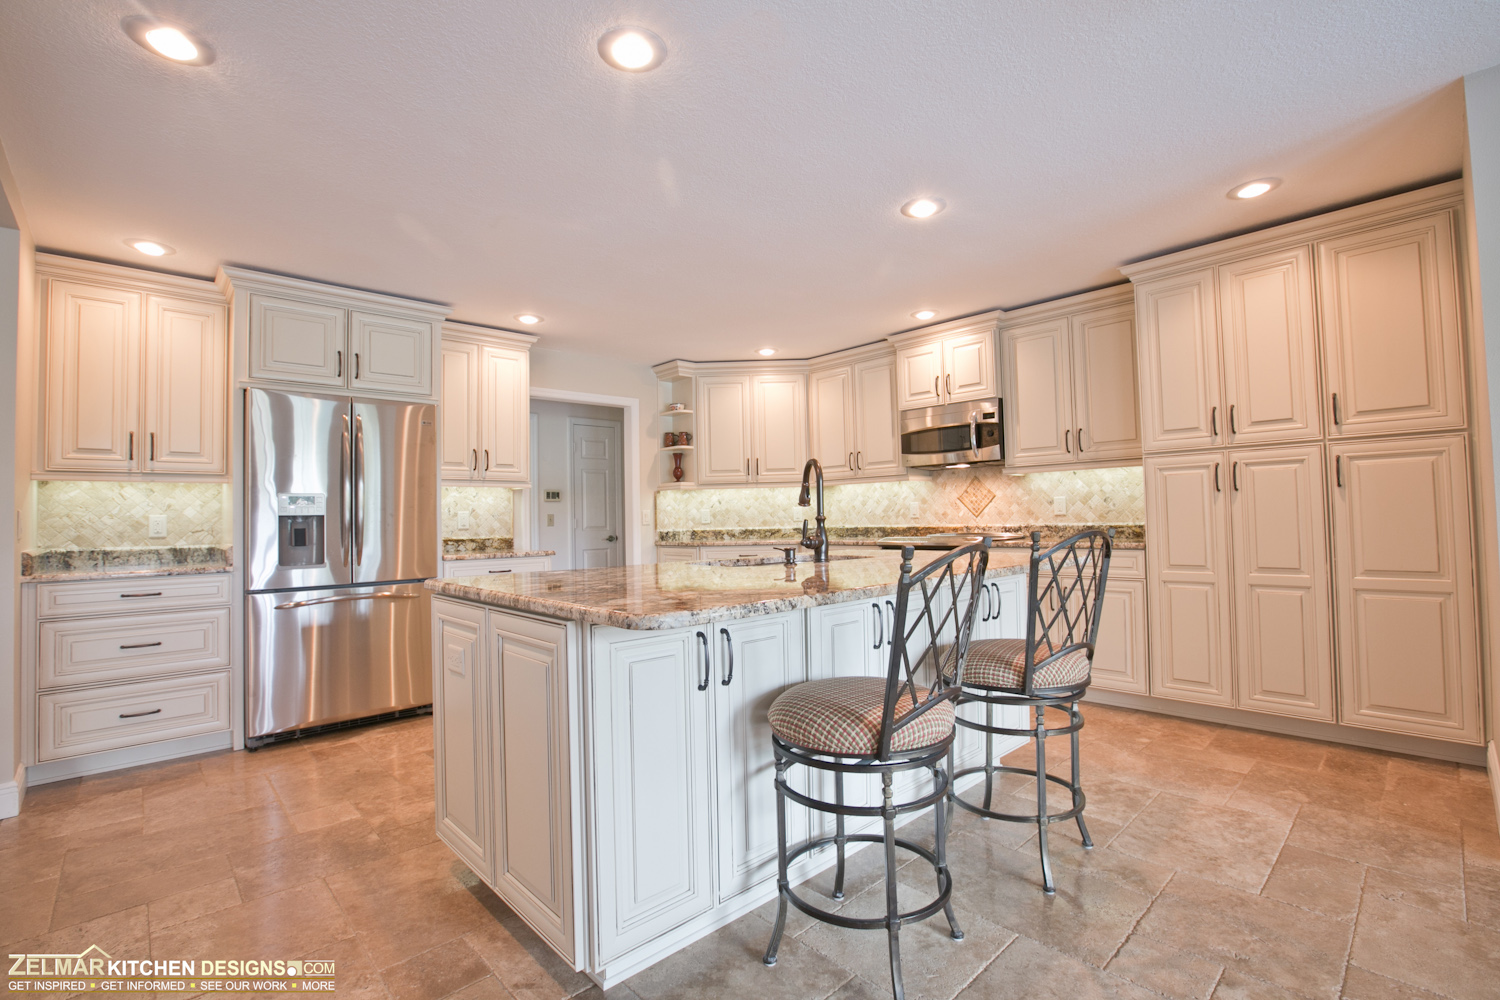 Waypoint Living Spaces Zelmar Kitchen Designs More